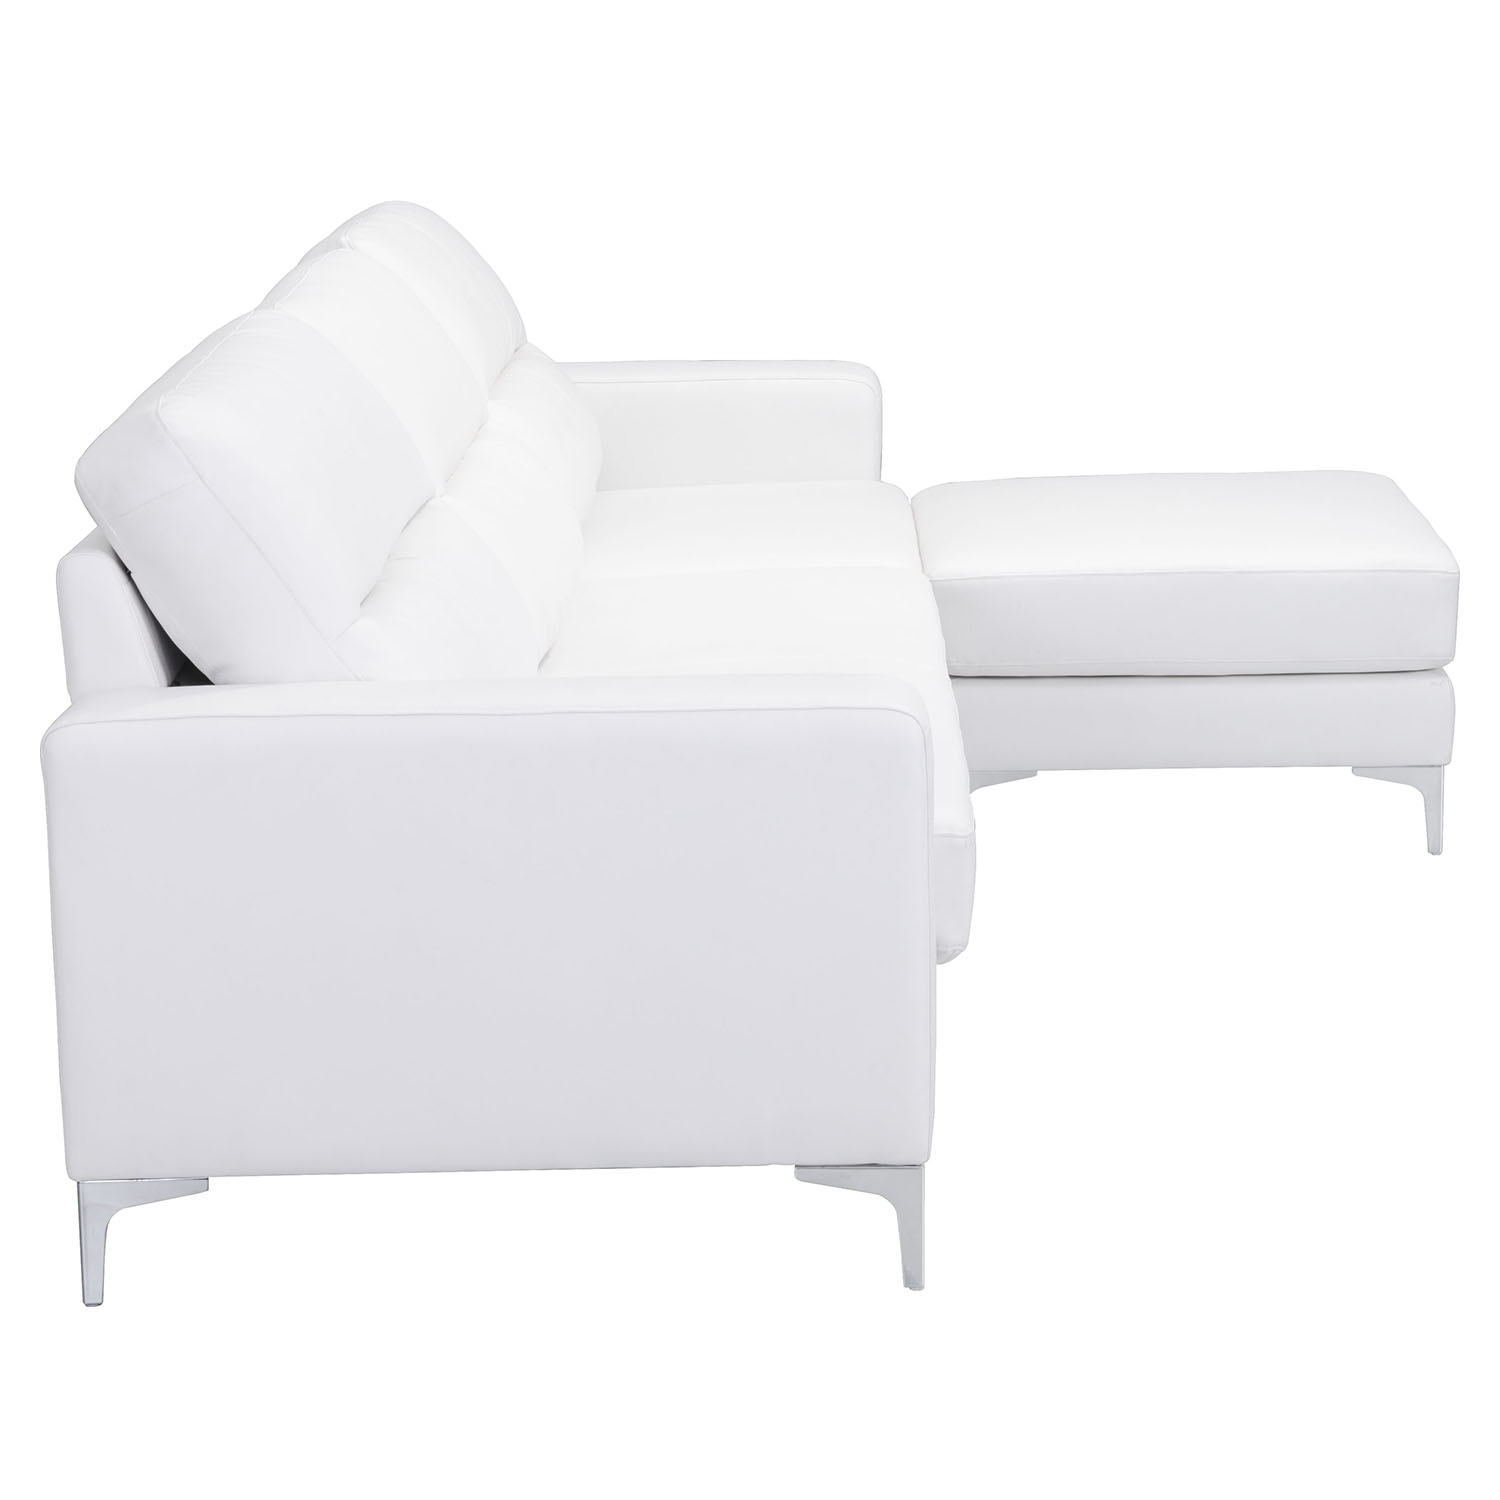 Versa Sectional - White - ZM-100233